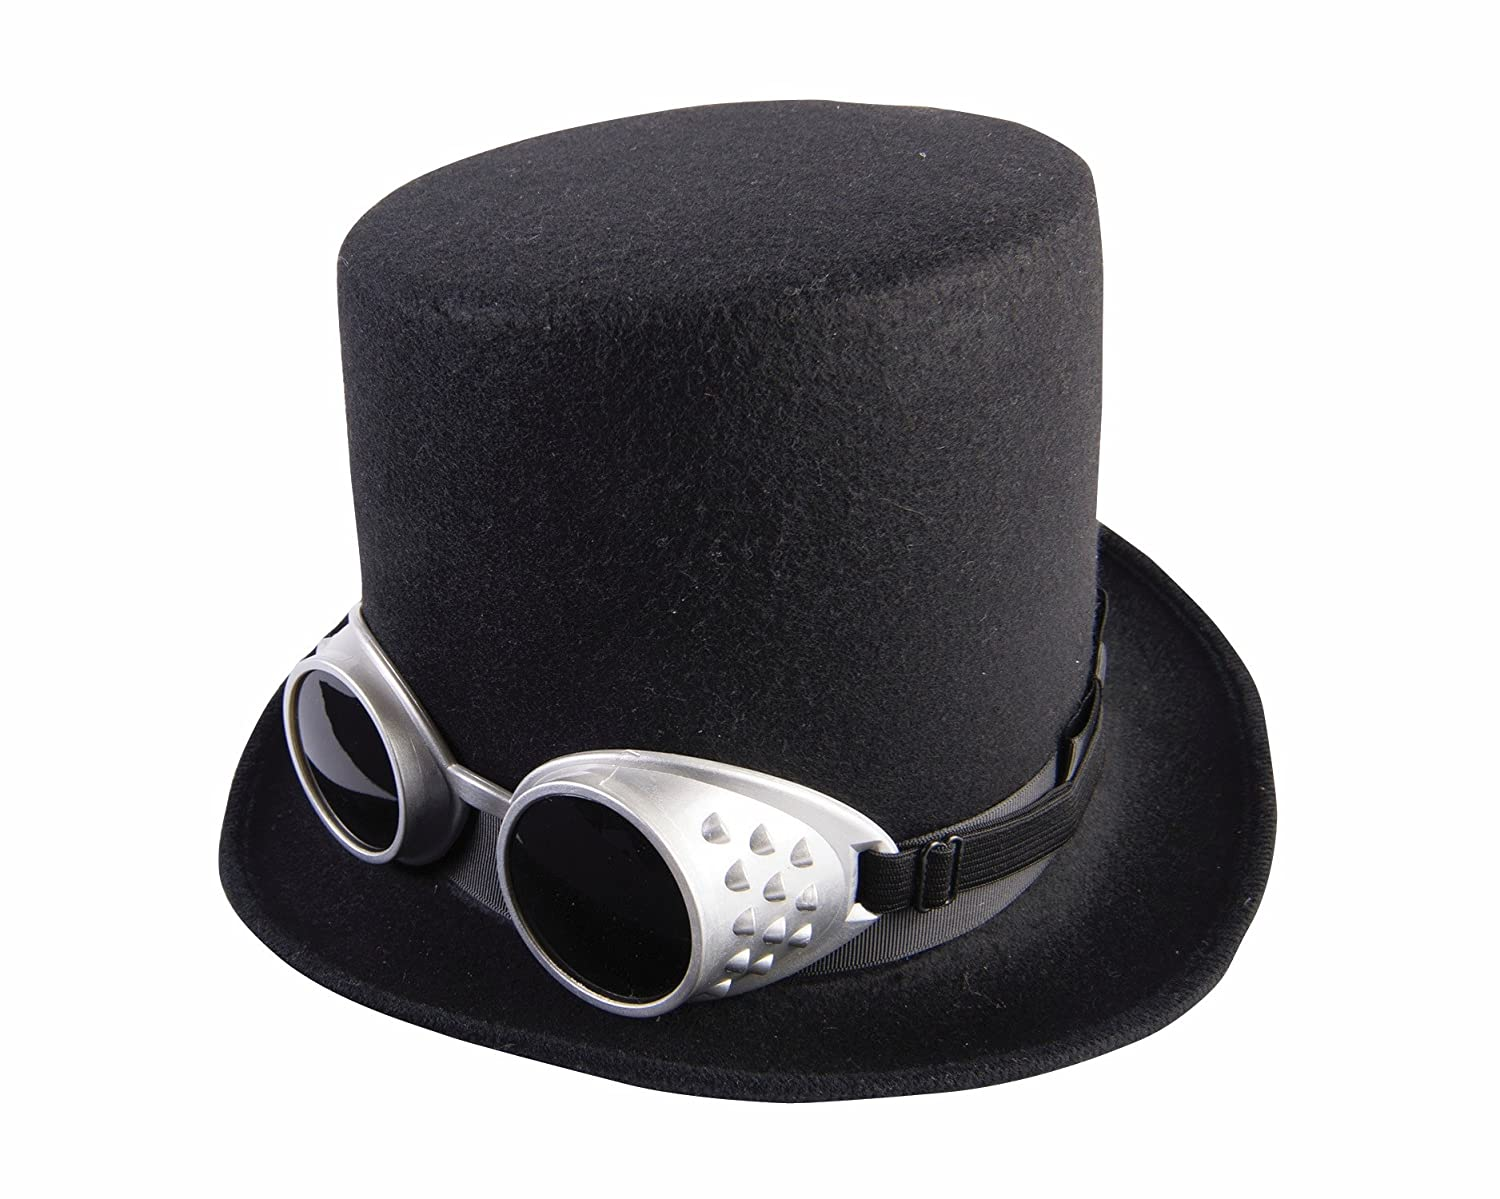 Favoriete Amazon.com: Faerynicethings Steampunk Top Hat with Removable @BM12